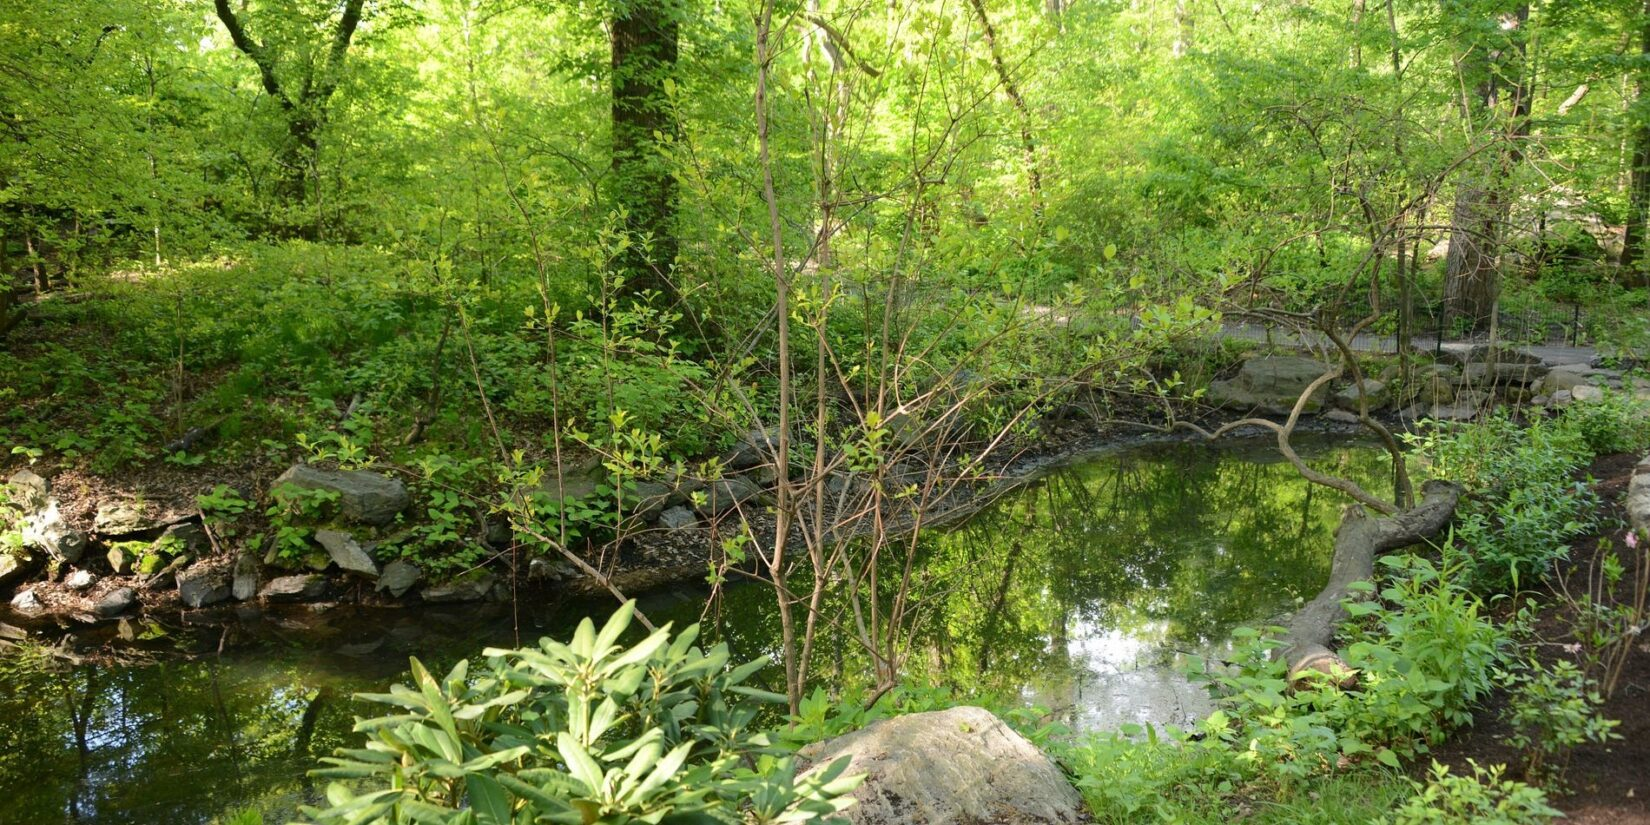 Sunlight streams through the spring-green landscape of the Gill.